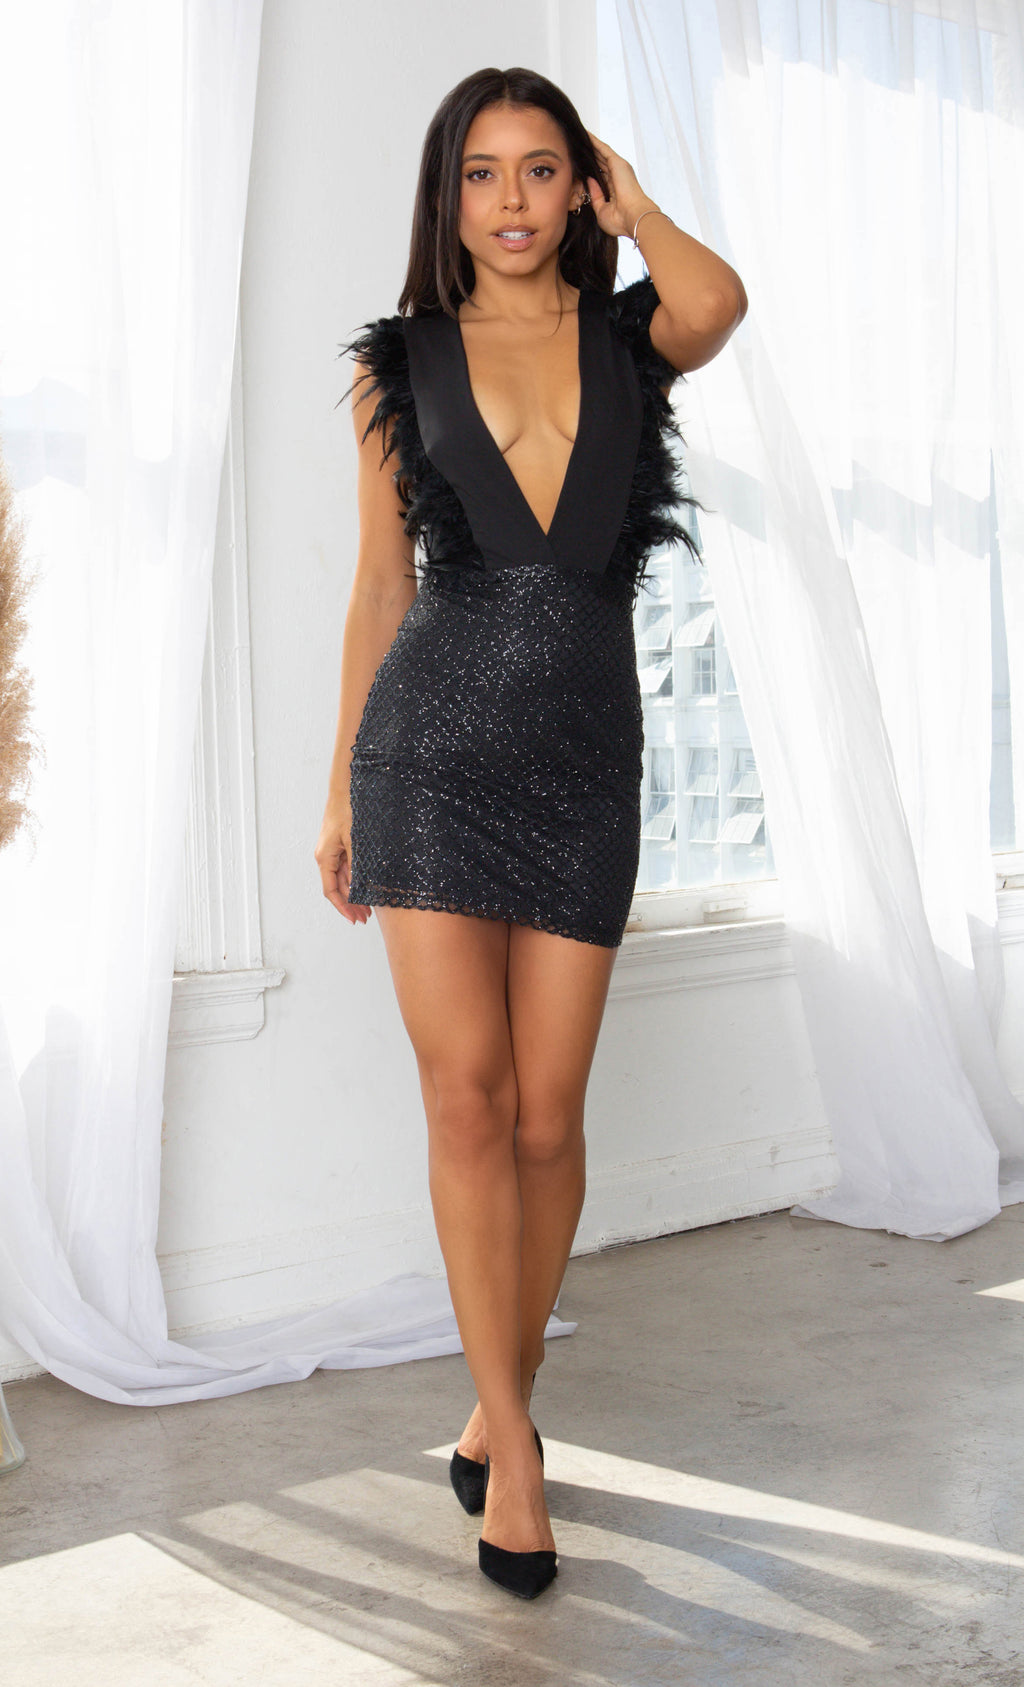 I Shine Brighter Black Sleeveless Feather Plunge V Neck Sequin Diamond Geometric Pattern Bodycon Mini Skirt - 2 Colors Available